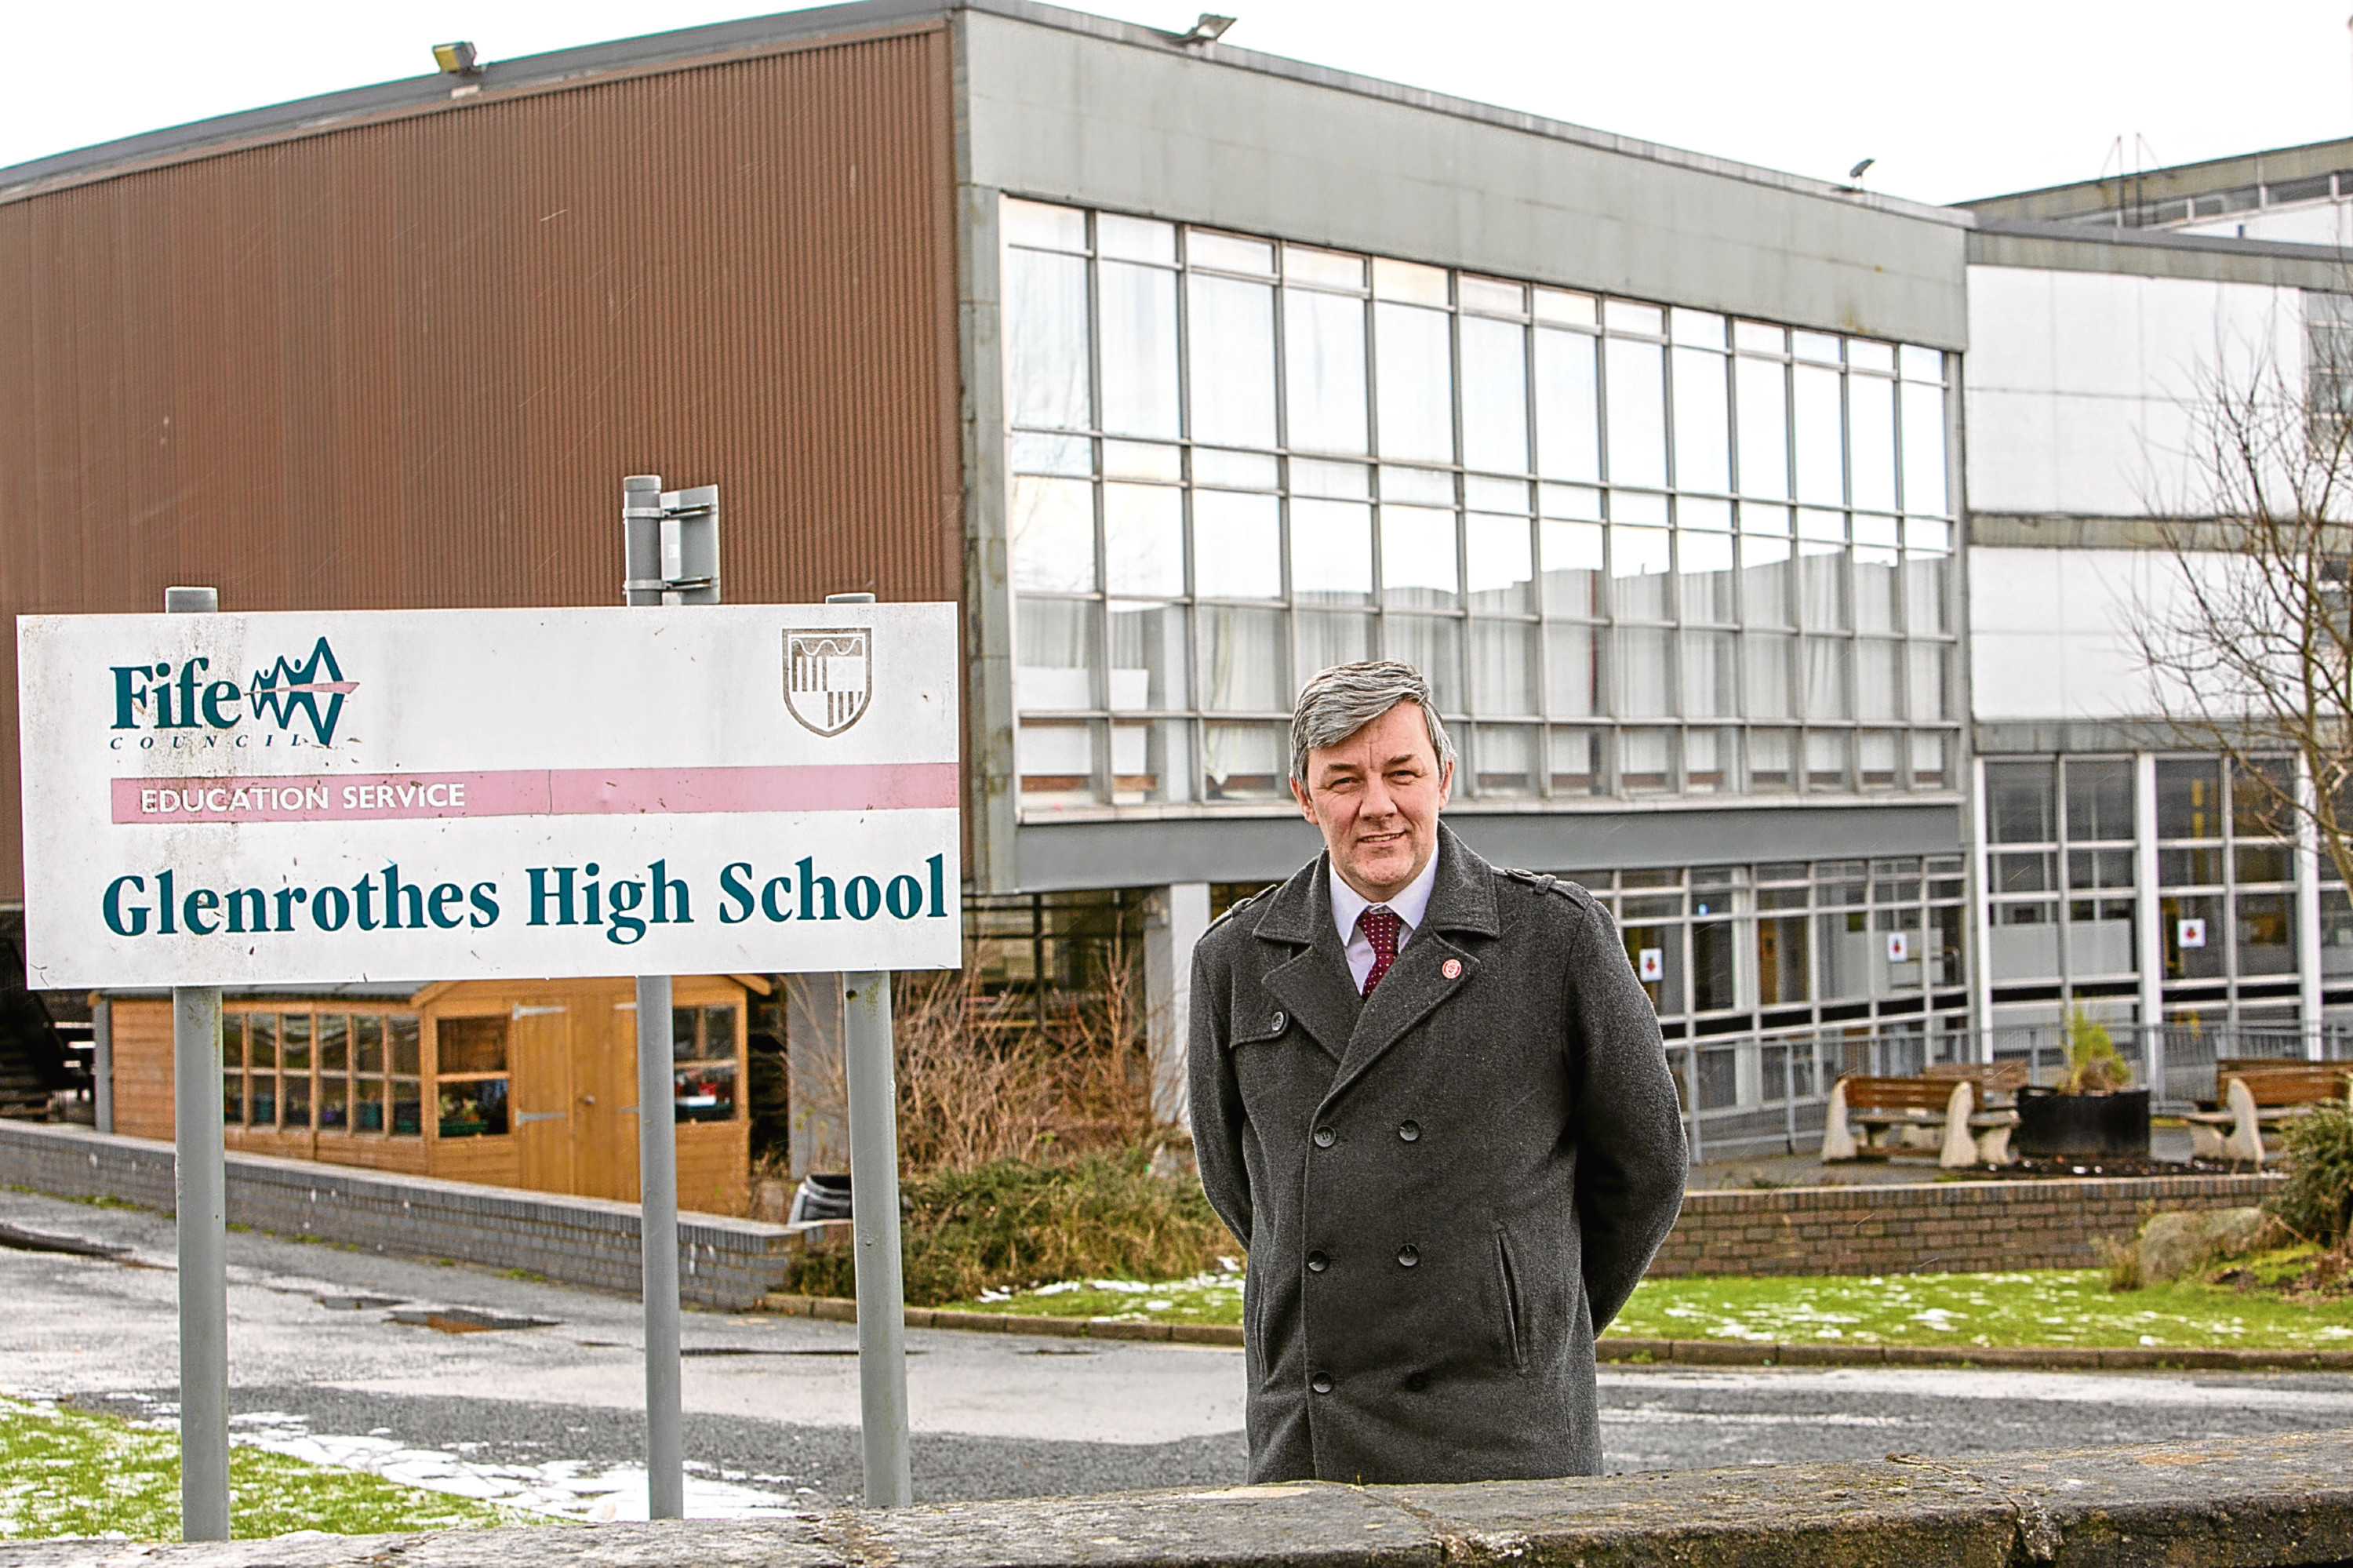 Councillor Altany Craik outside Glenrothes High School.